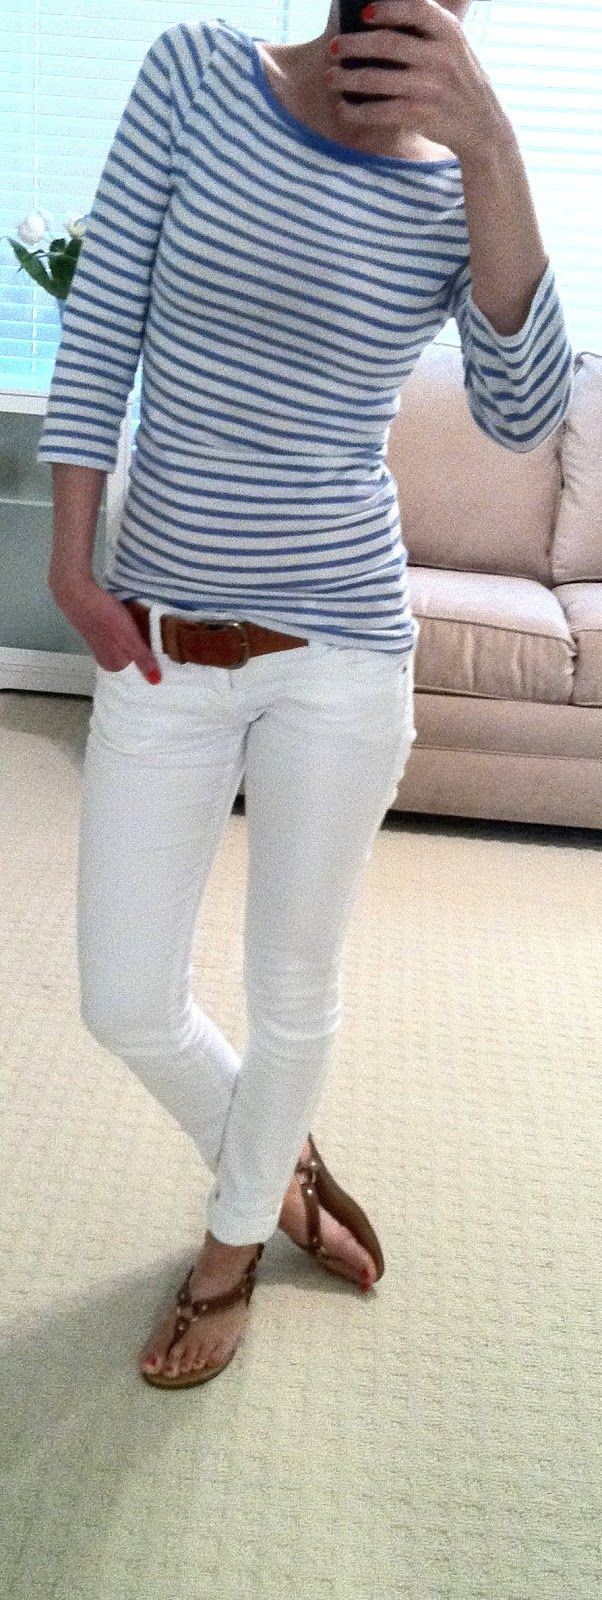 nautical - CAbi can put you in the Stella Jean and the New Stripe Tee to punch this up a notch ... Or maybe CAbi's New white Farrah!